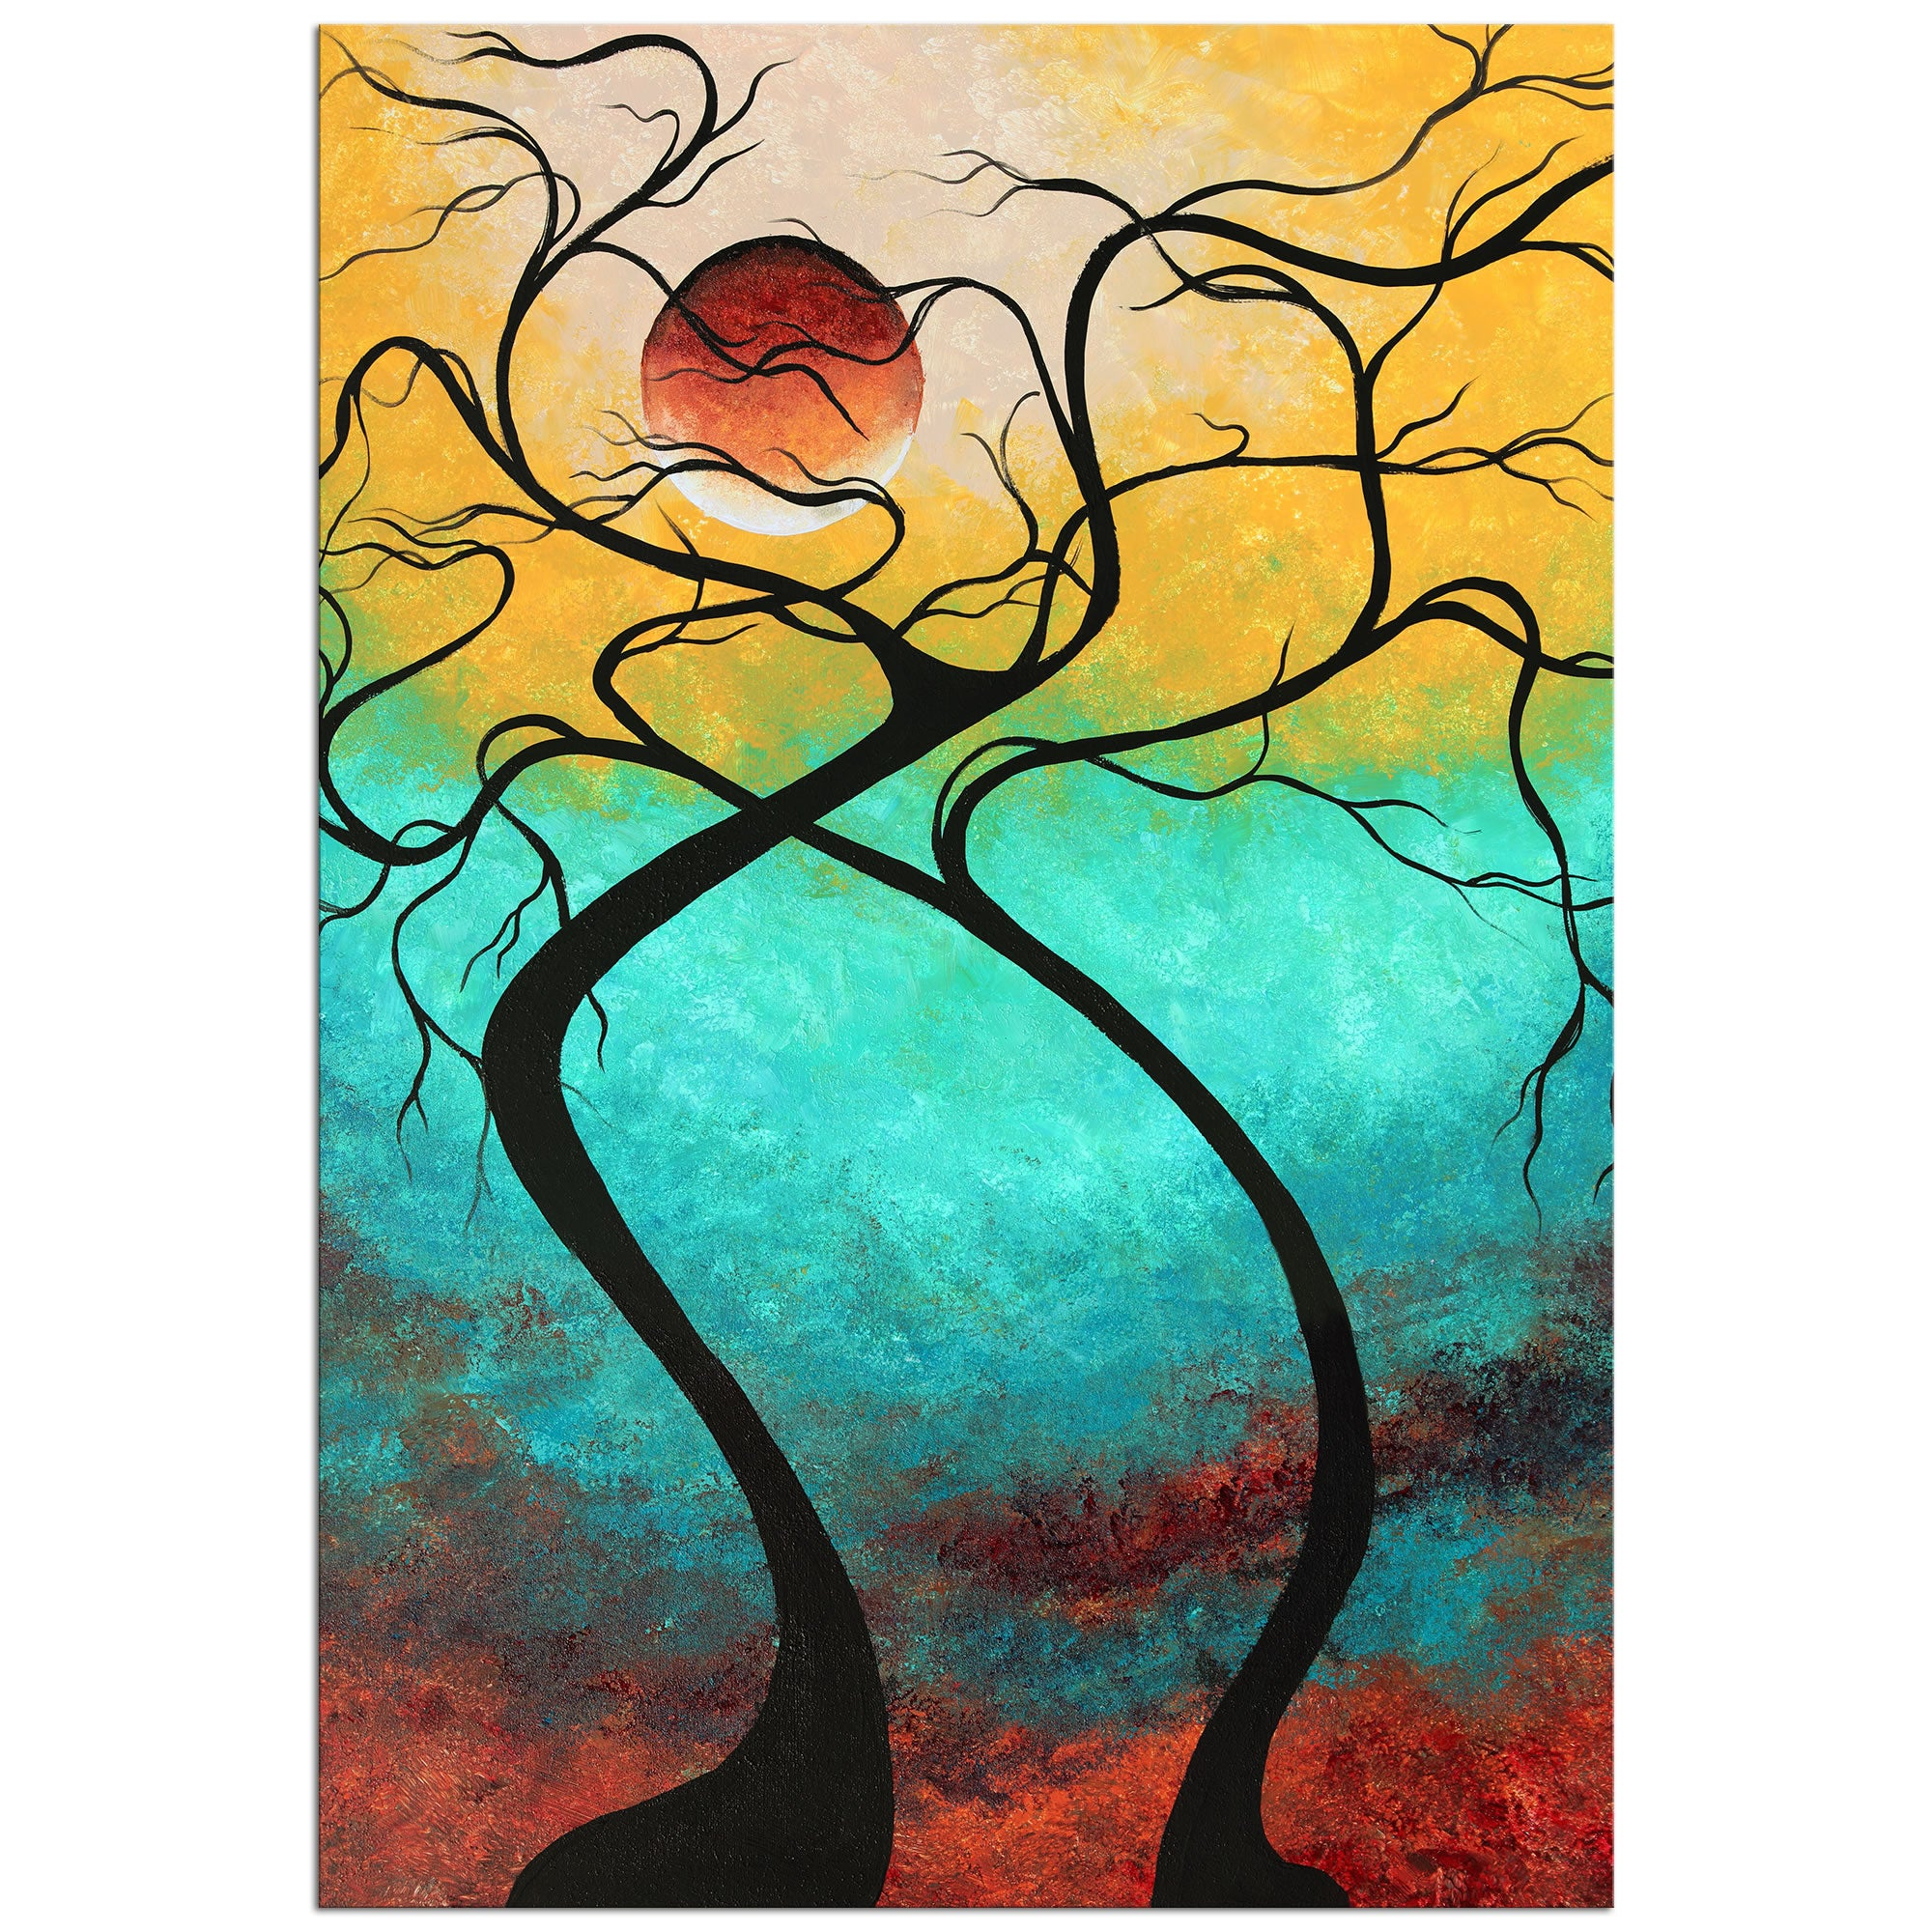 Twisting Love III - Large Indoor/Outdoor Contemporary Art by Megan Duncanson